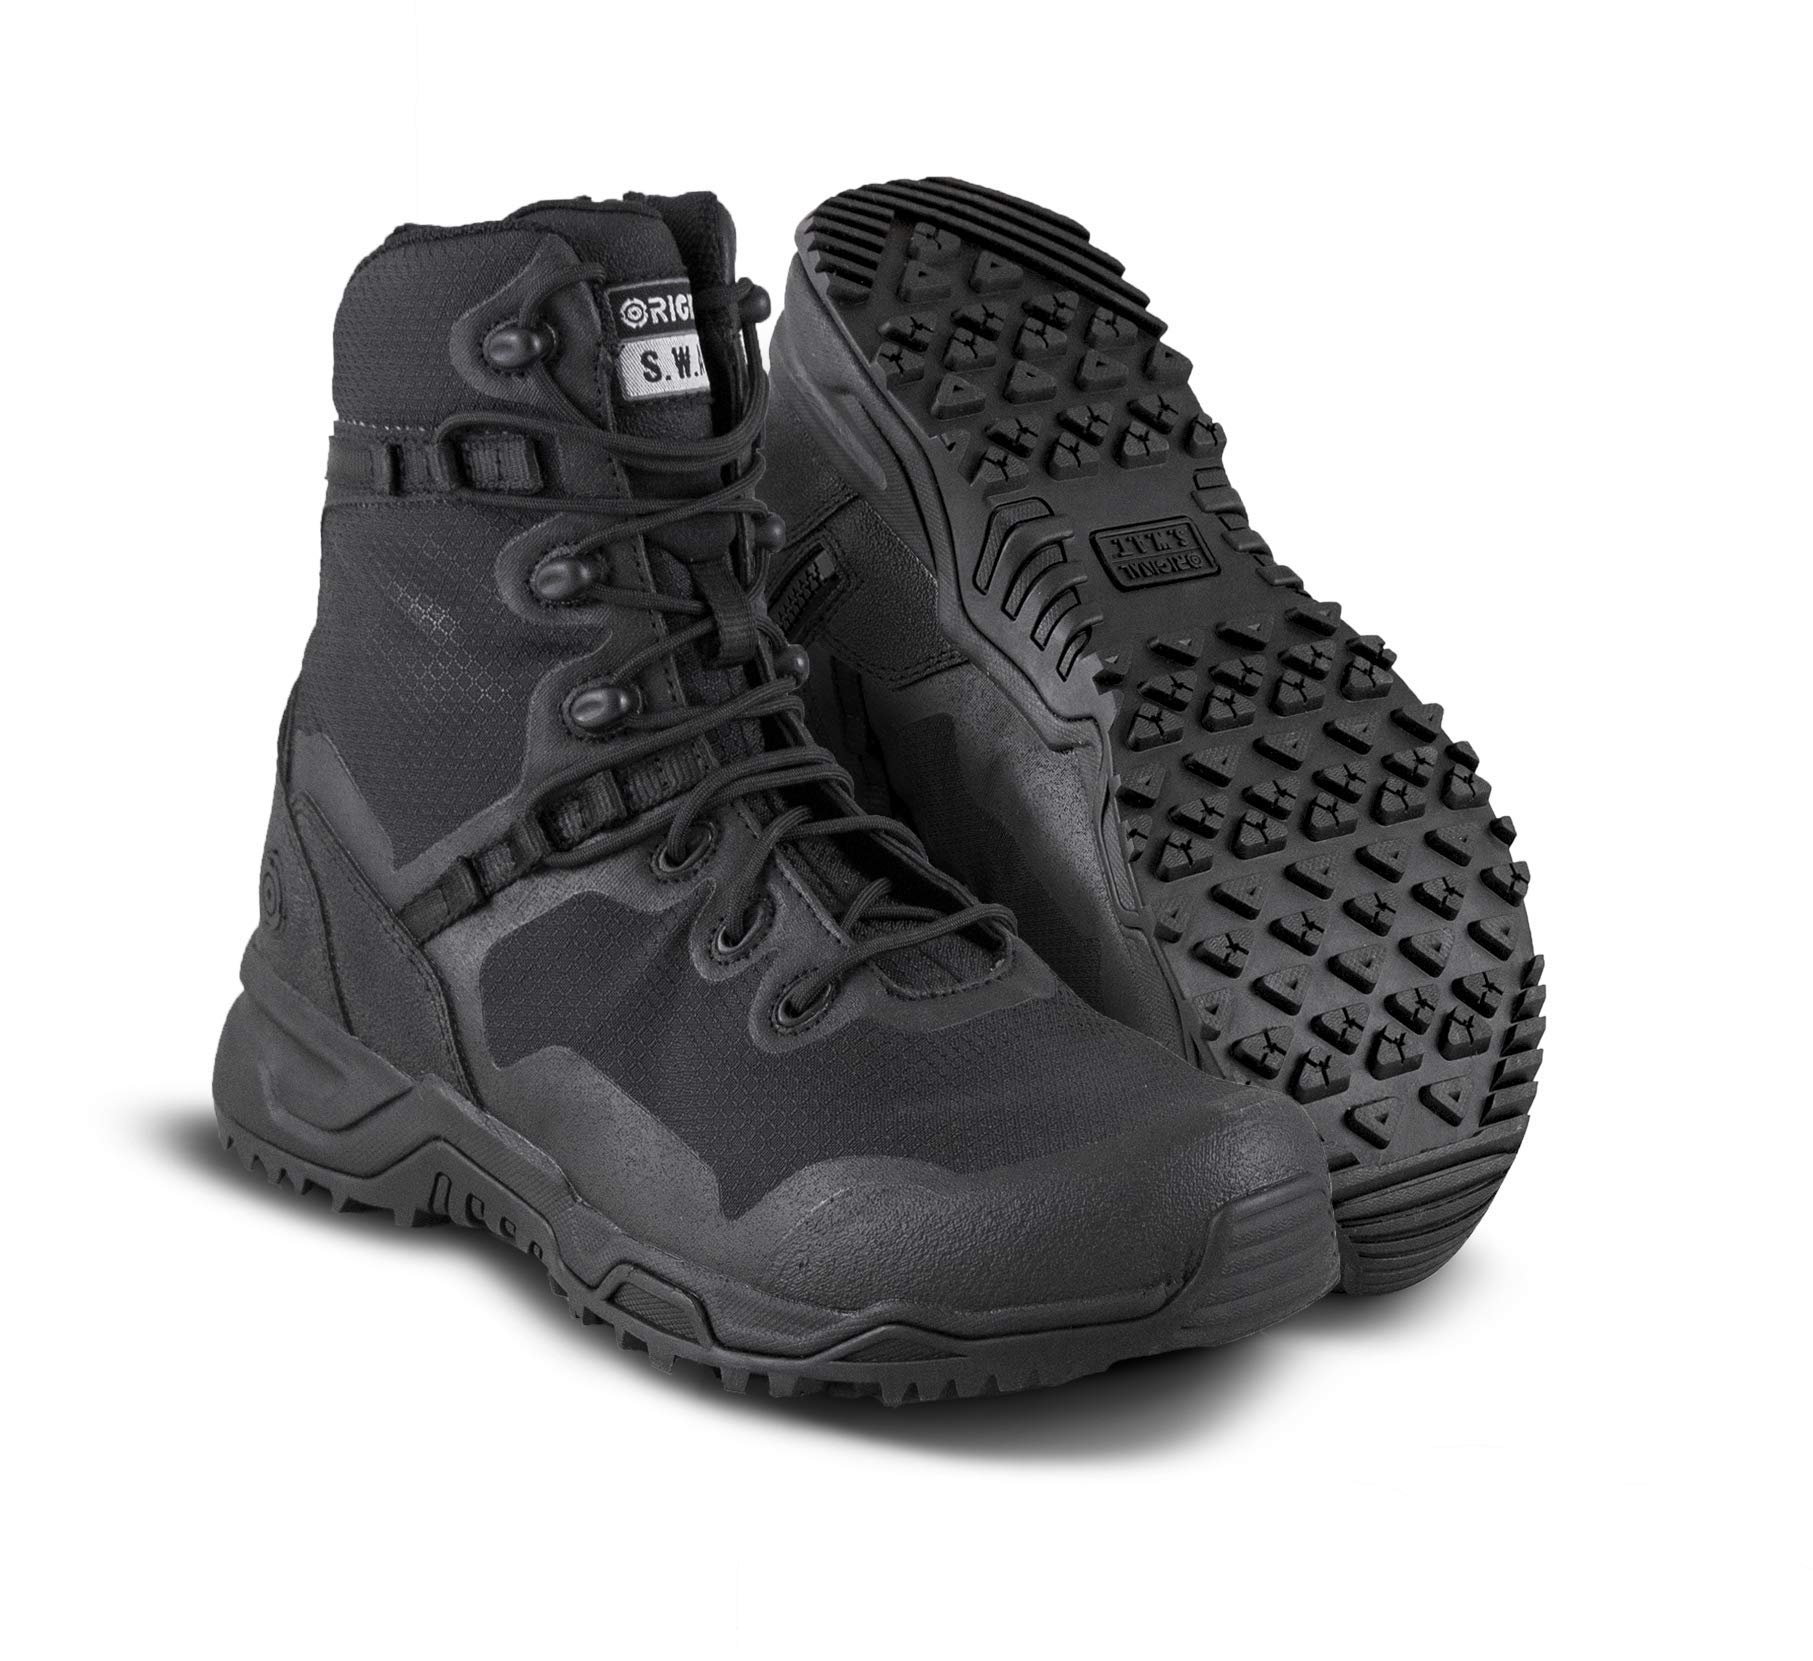 """Original SWAT Alpha Fury 8"""" Tactical Boot   High Performance Light Weight Duty Shoes   Airport Friendly"""